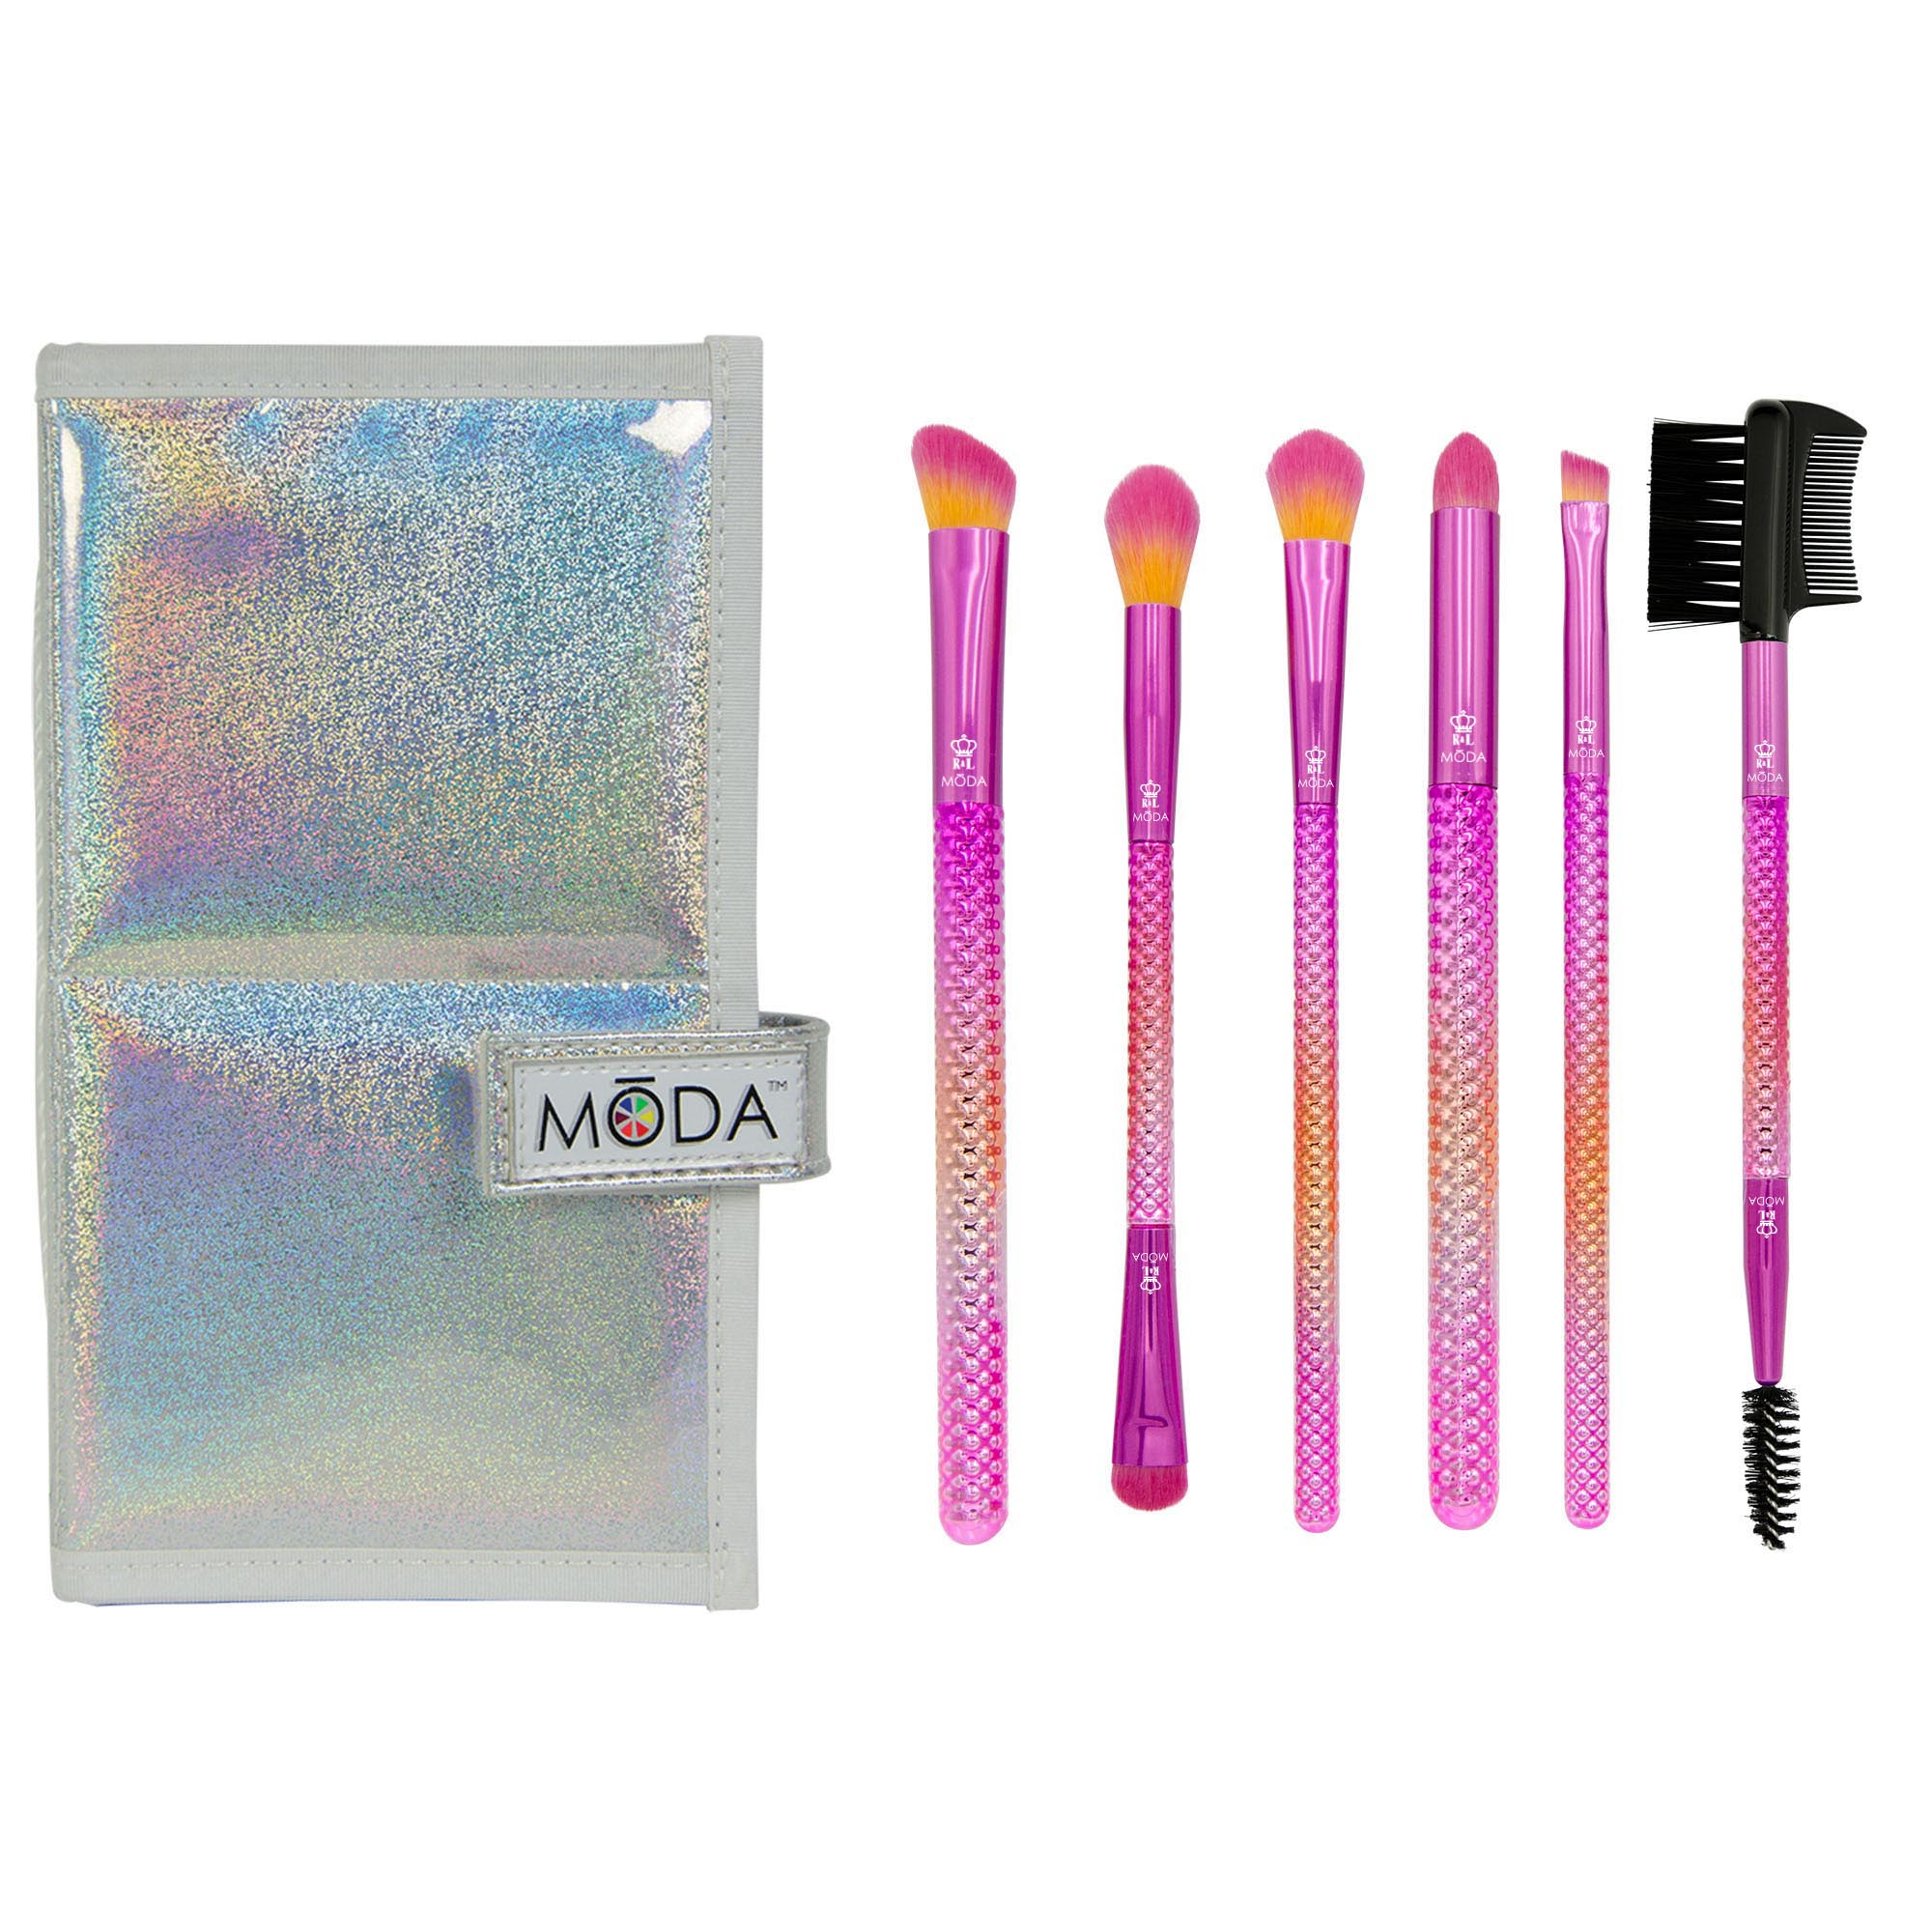 Royal & Langnickel Moda Prismatic 7pc Beautiful Eyes Kit